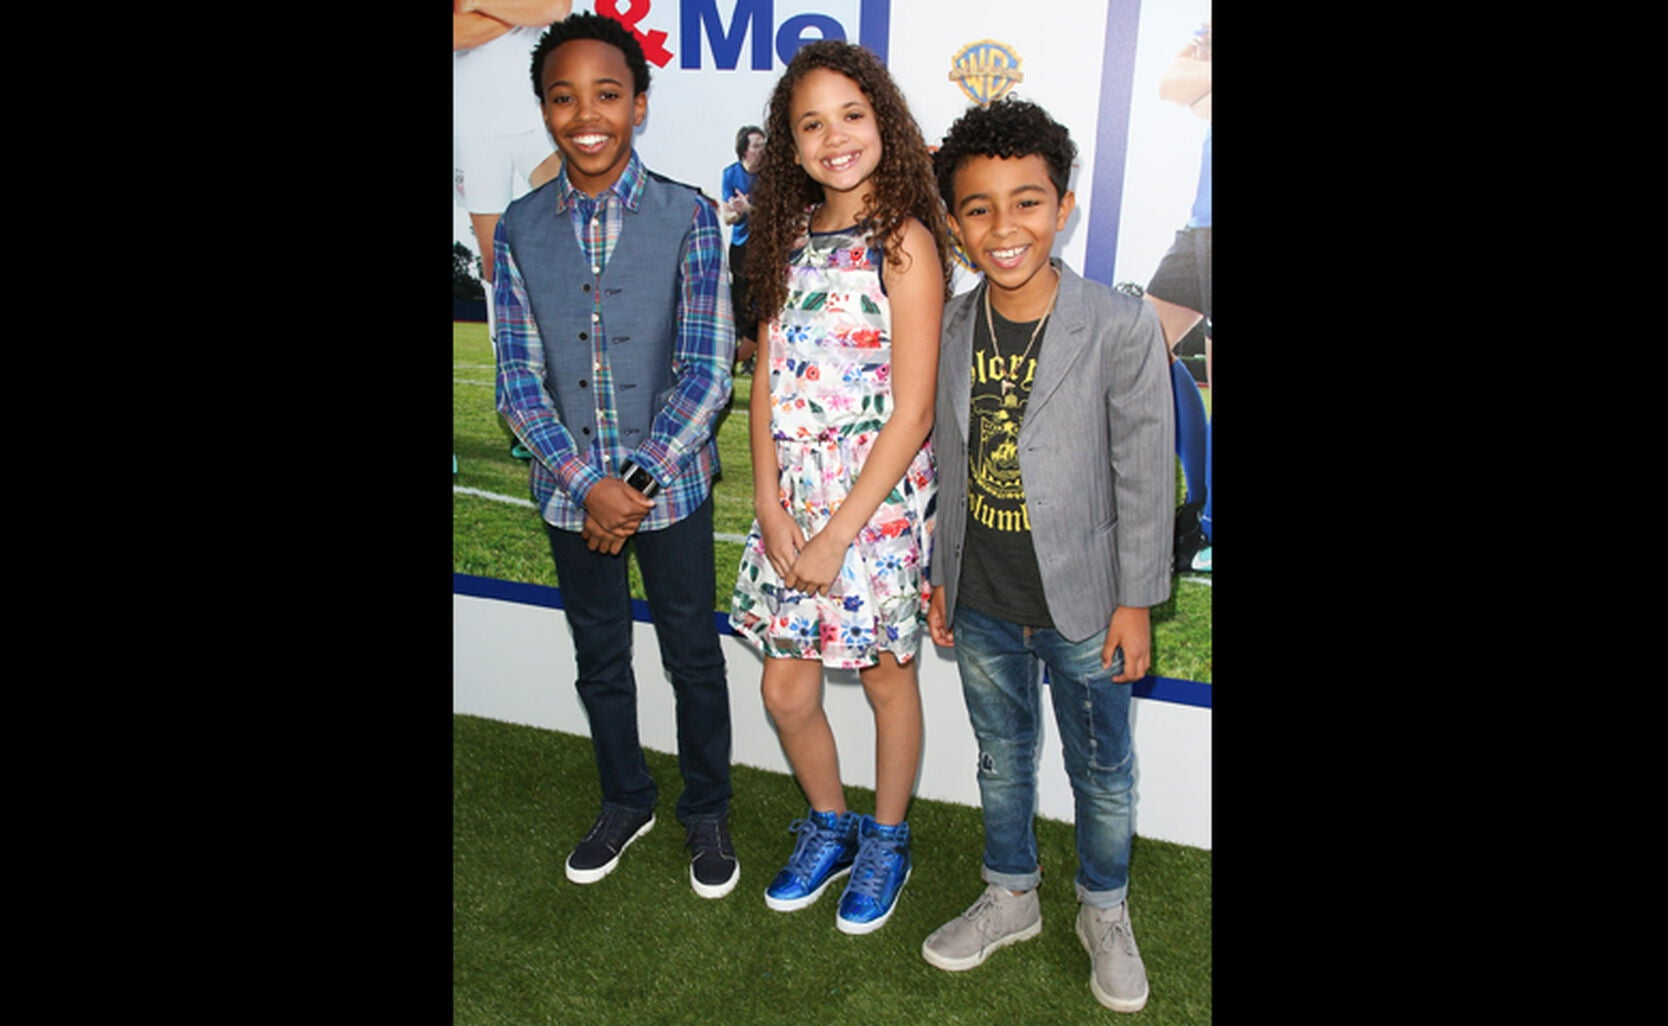 Dallas Young, Scarlet Spencer and Micah Abbey